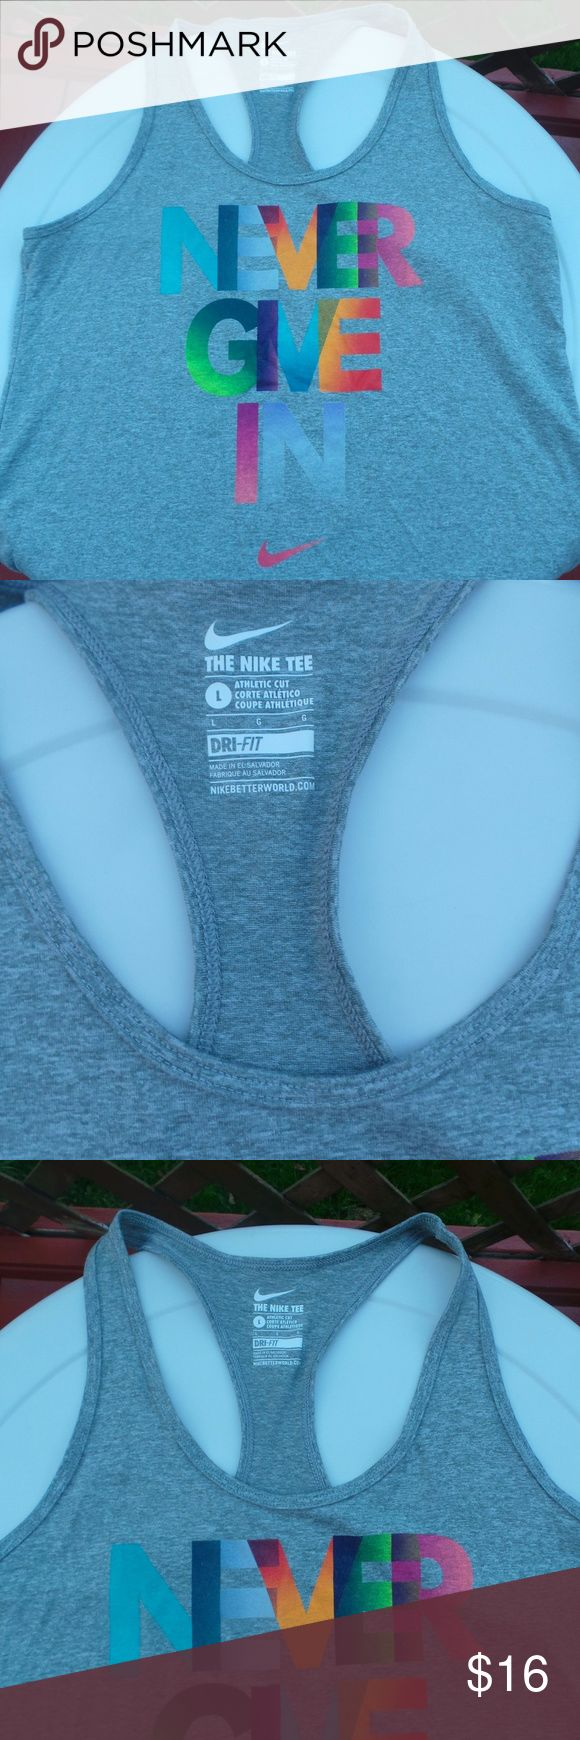 Nike Racer Back Dri Fit Athletic Wear Top size L New without tags. Nike, racerback athletic wear tank top. Gray with multi color working. Cotton. Size Large. Really cute work out wear. Nike Tops